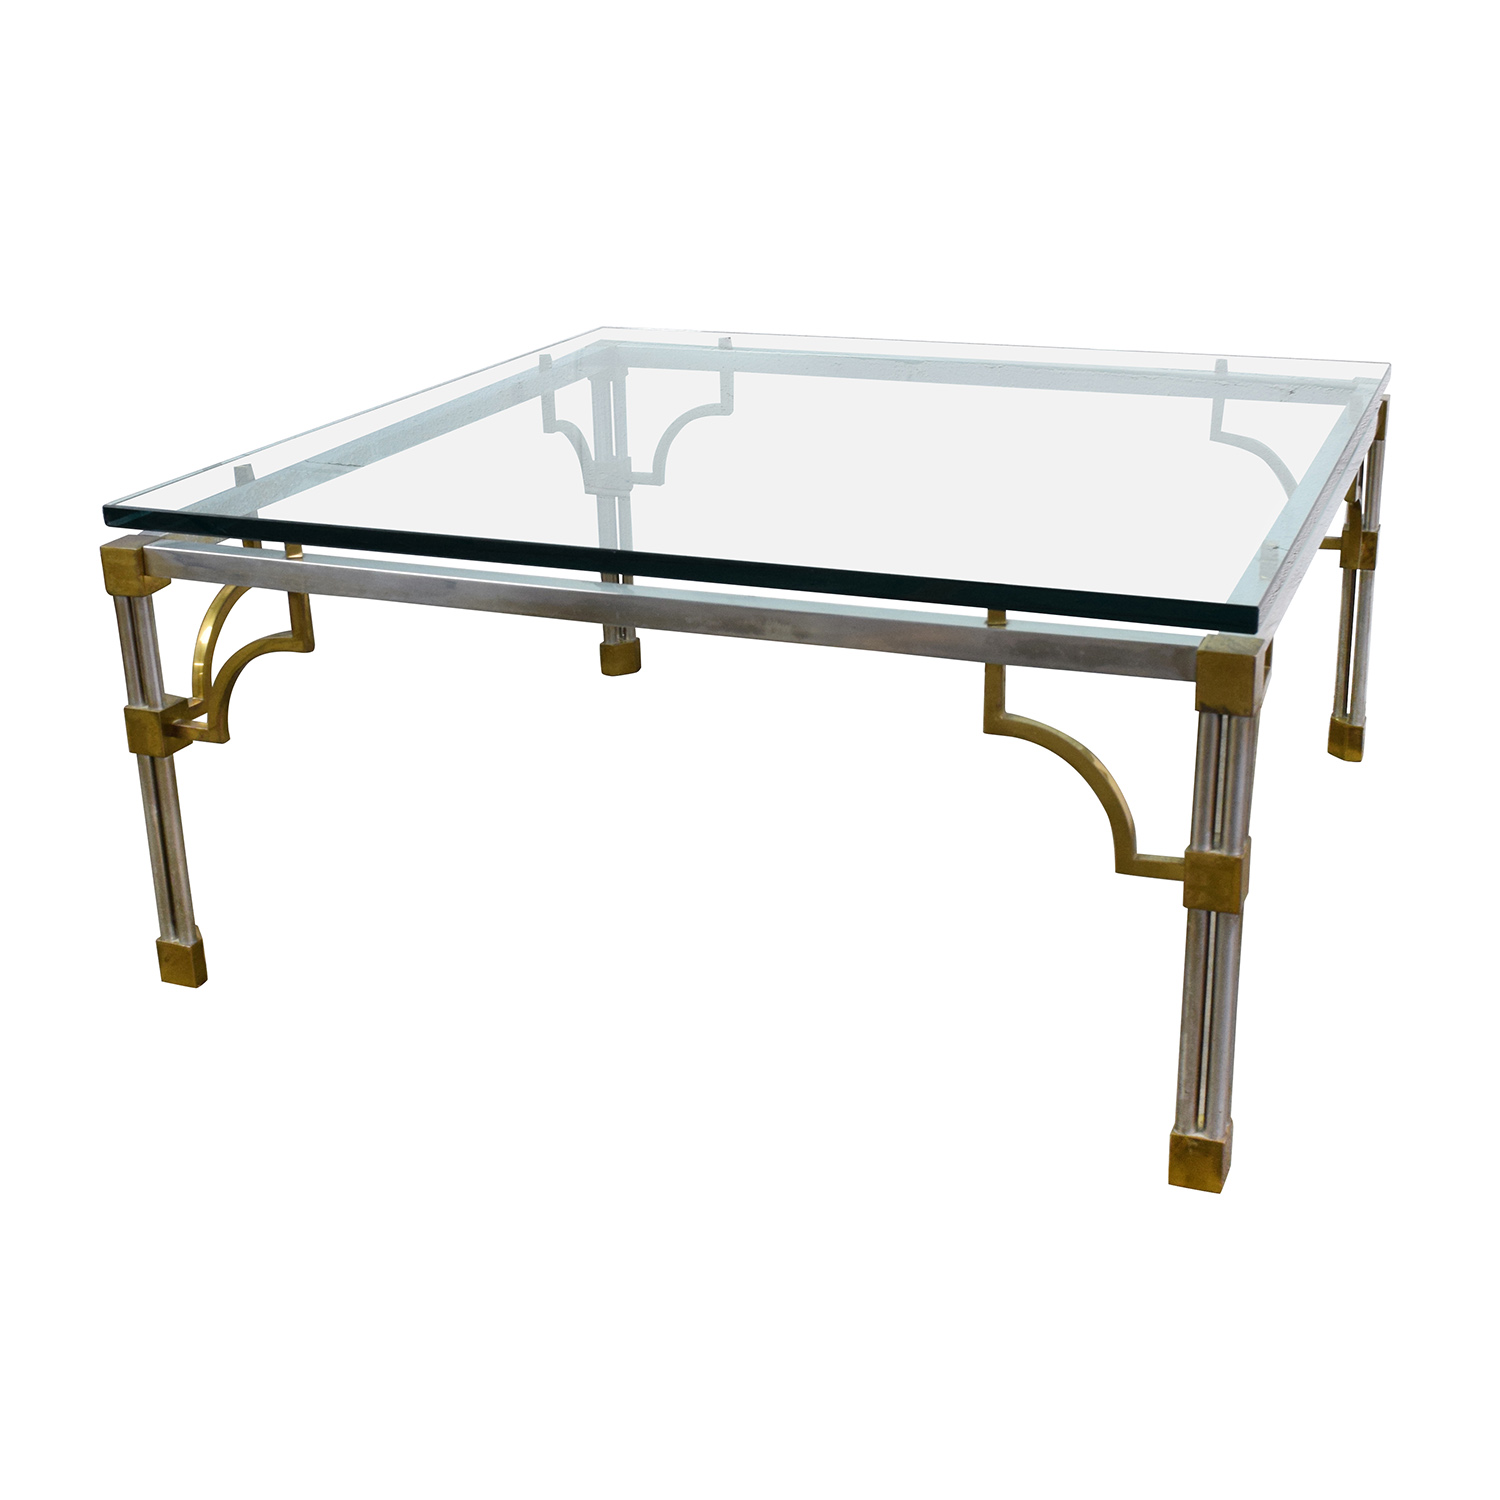 90 OFF Vintage Brass and Glass Coffee Table Tables : vintage brass and glass coffee table from furnishare.com size 1500 x 1500 jpeg 191kB